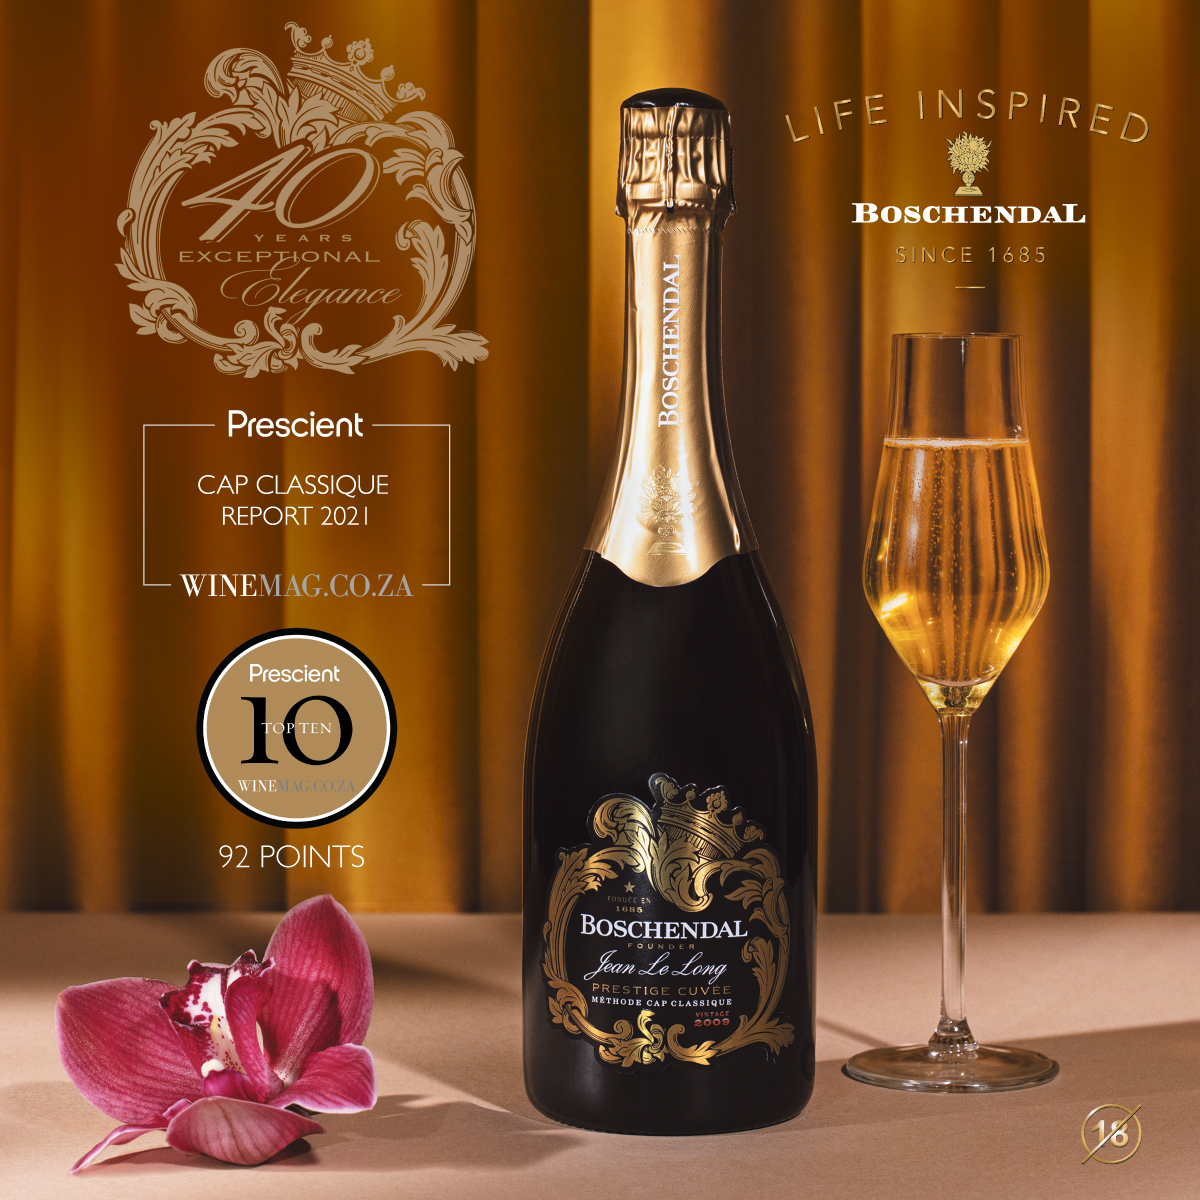 Boschendal Celebrates 40 Years of Pioneering Cap Classique Excellence with Winemag Top 10 photo